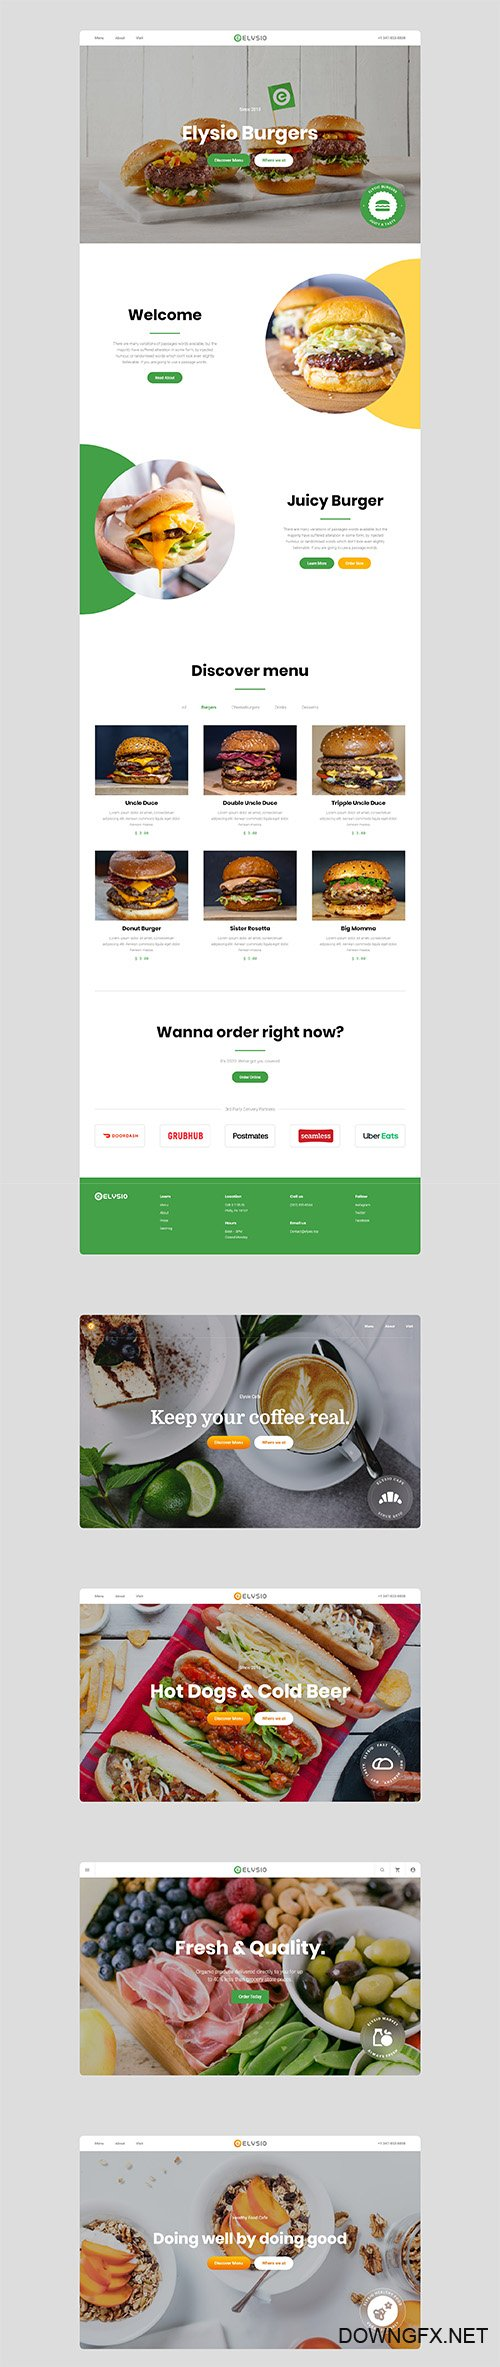 Elysio - Food Web UI Kit